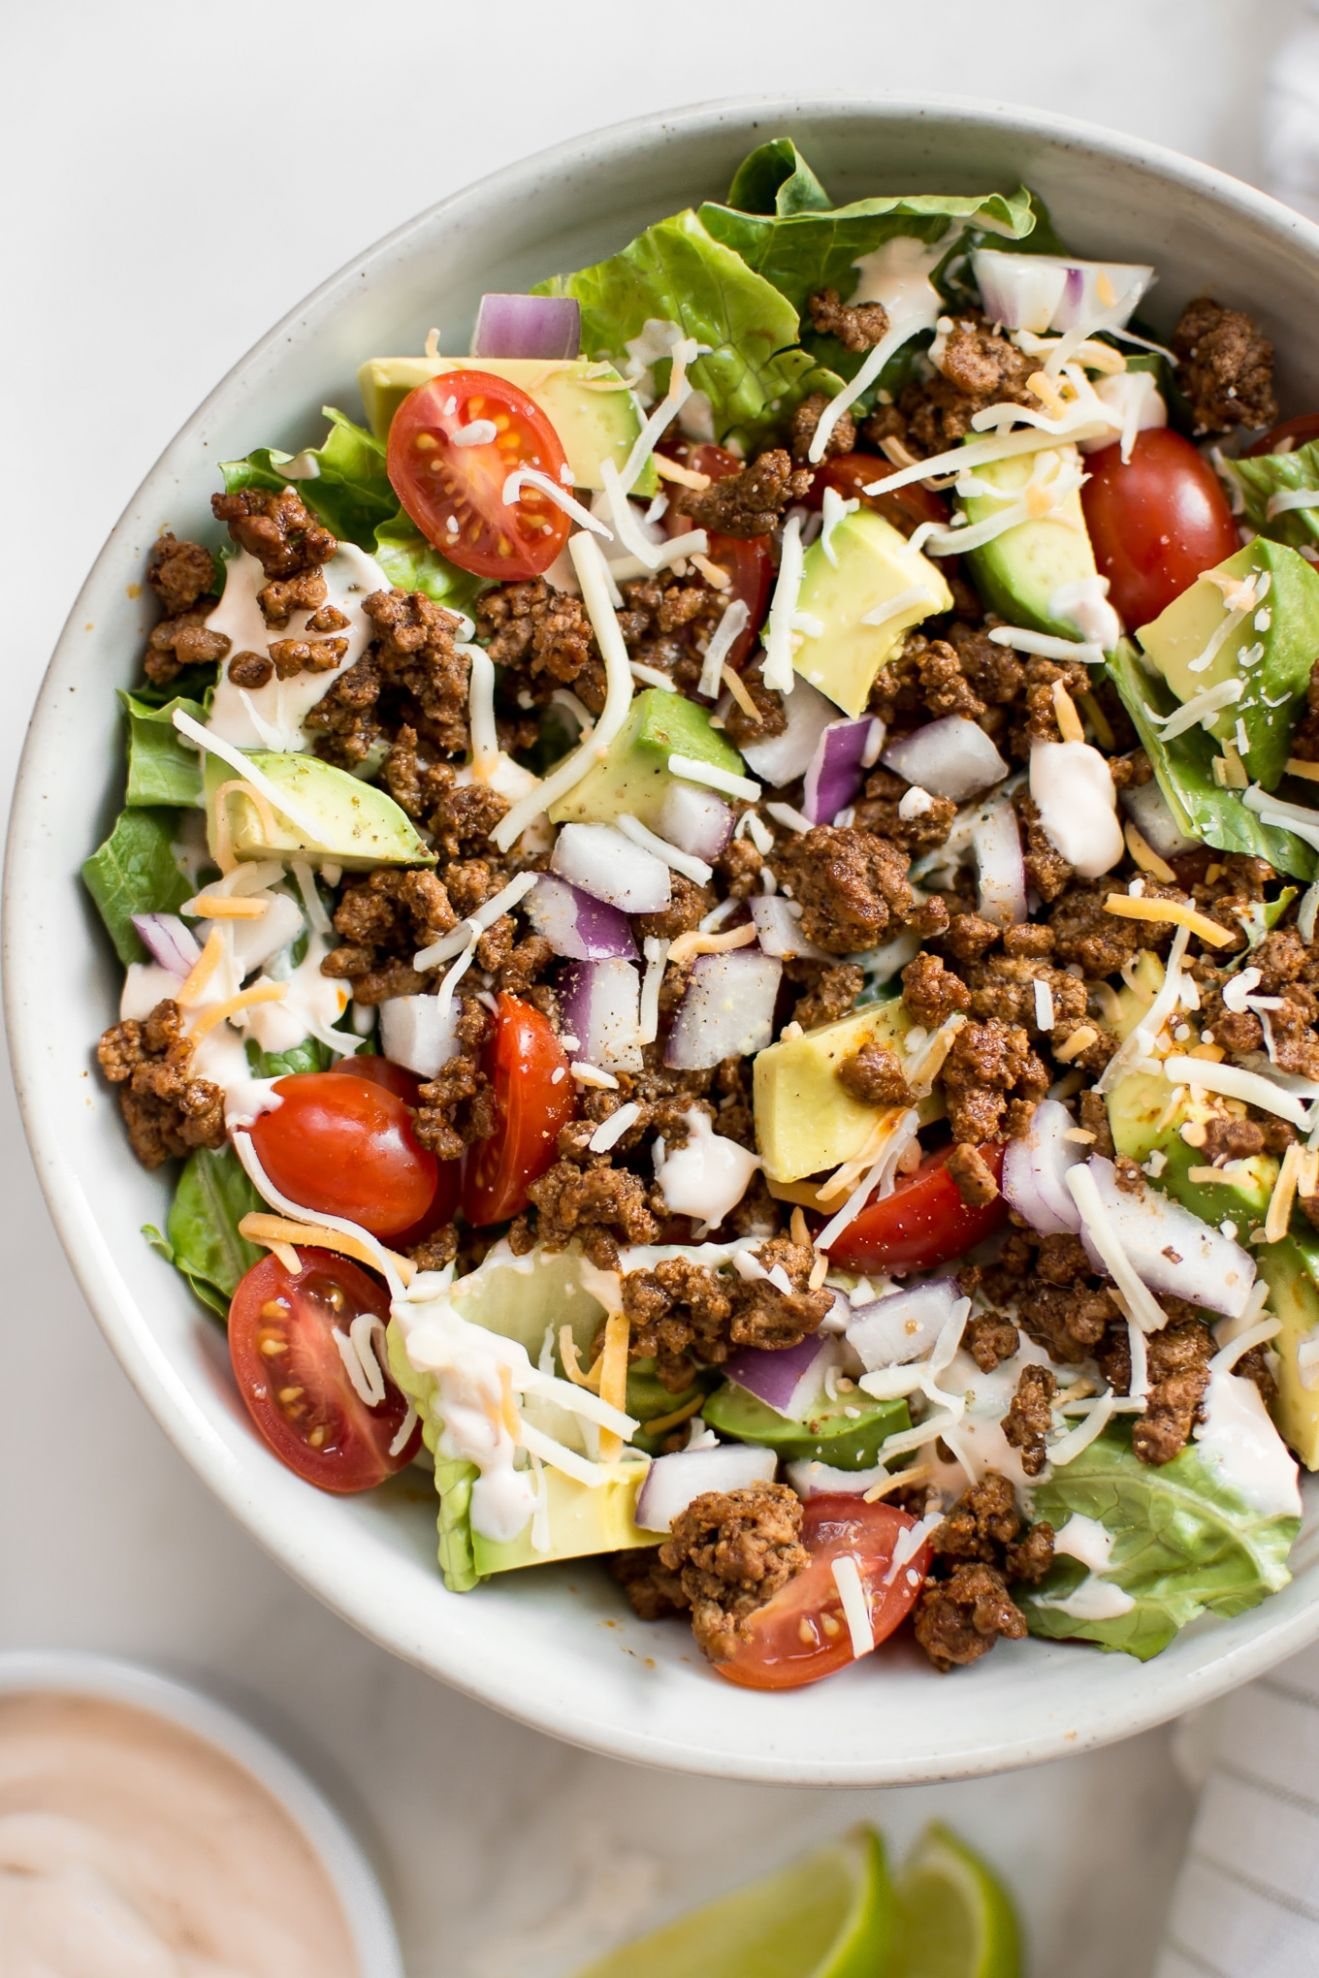 Low-Carb Taco Salad Recipe - Salad Recipes Low Carb